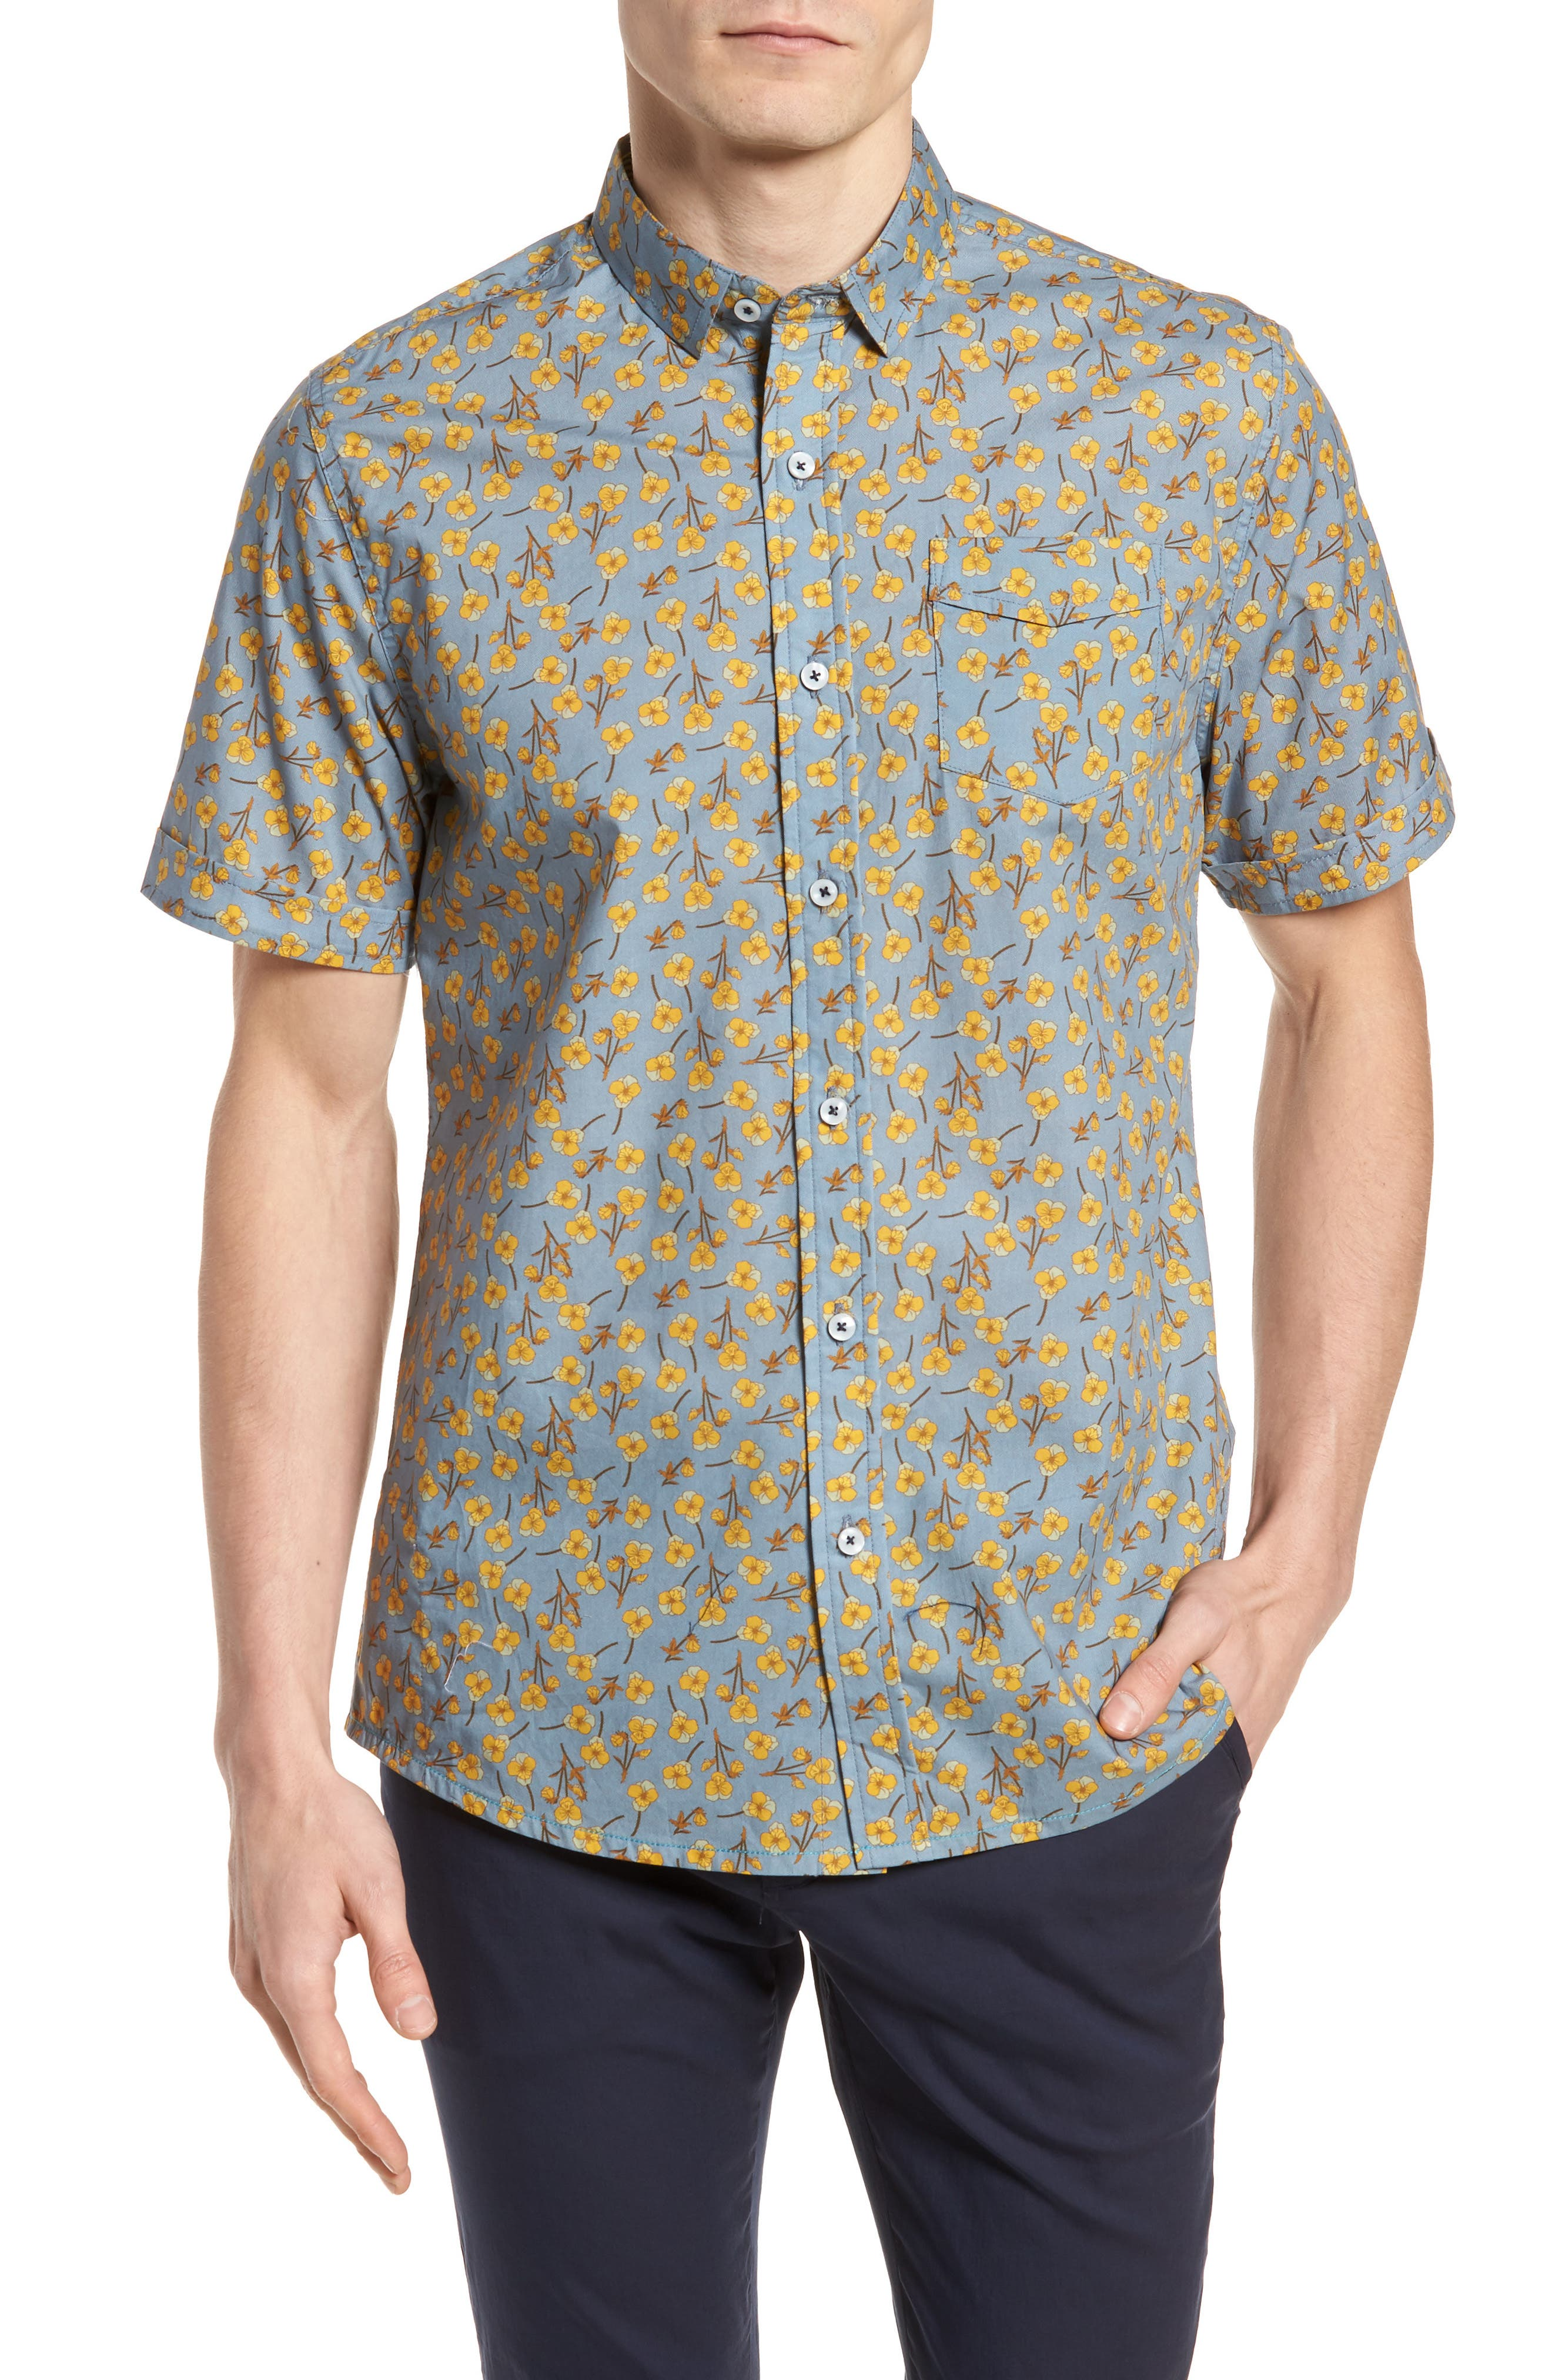 Golden Flower Shirt,                             Main thumbnail 1, color,                             400